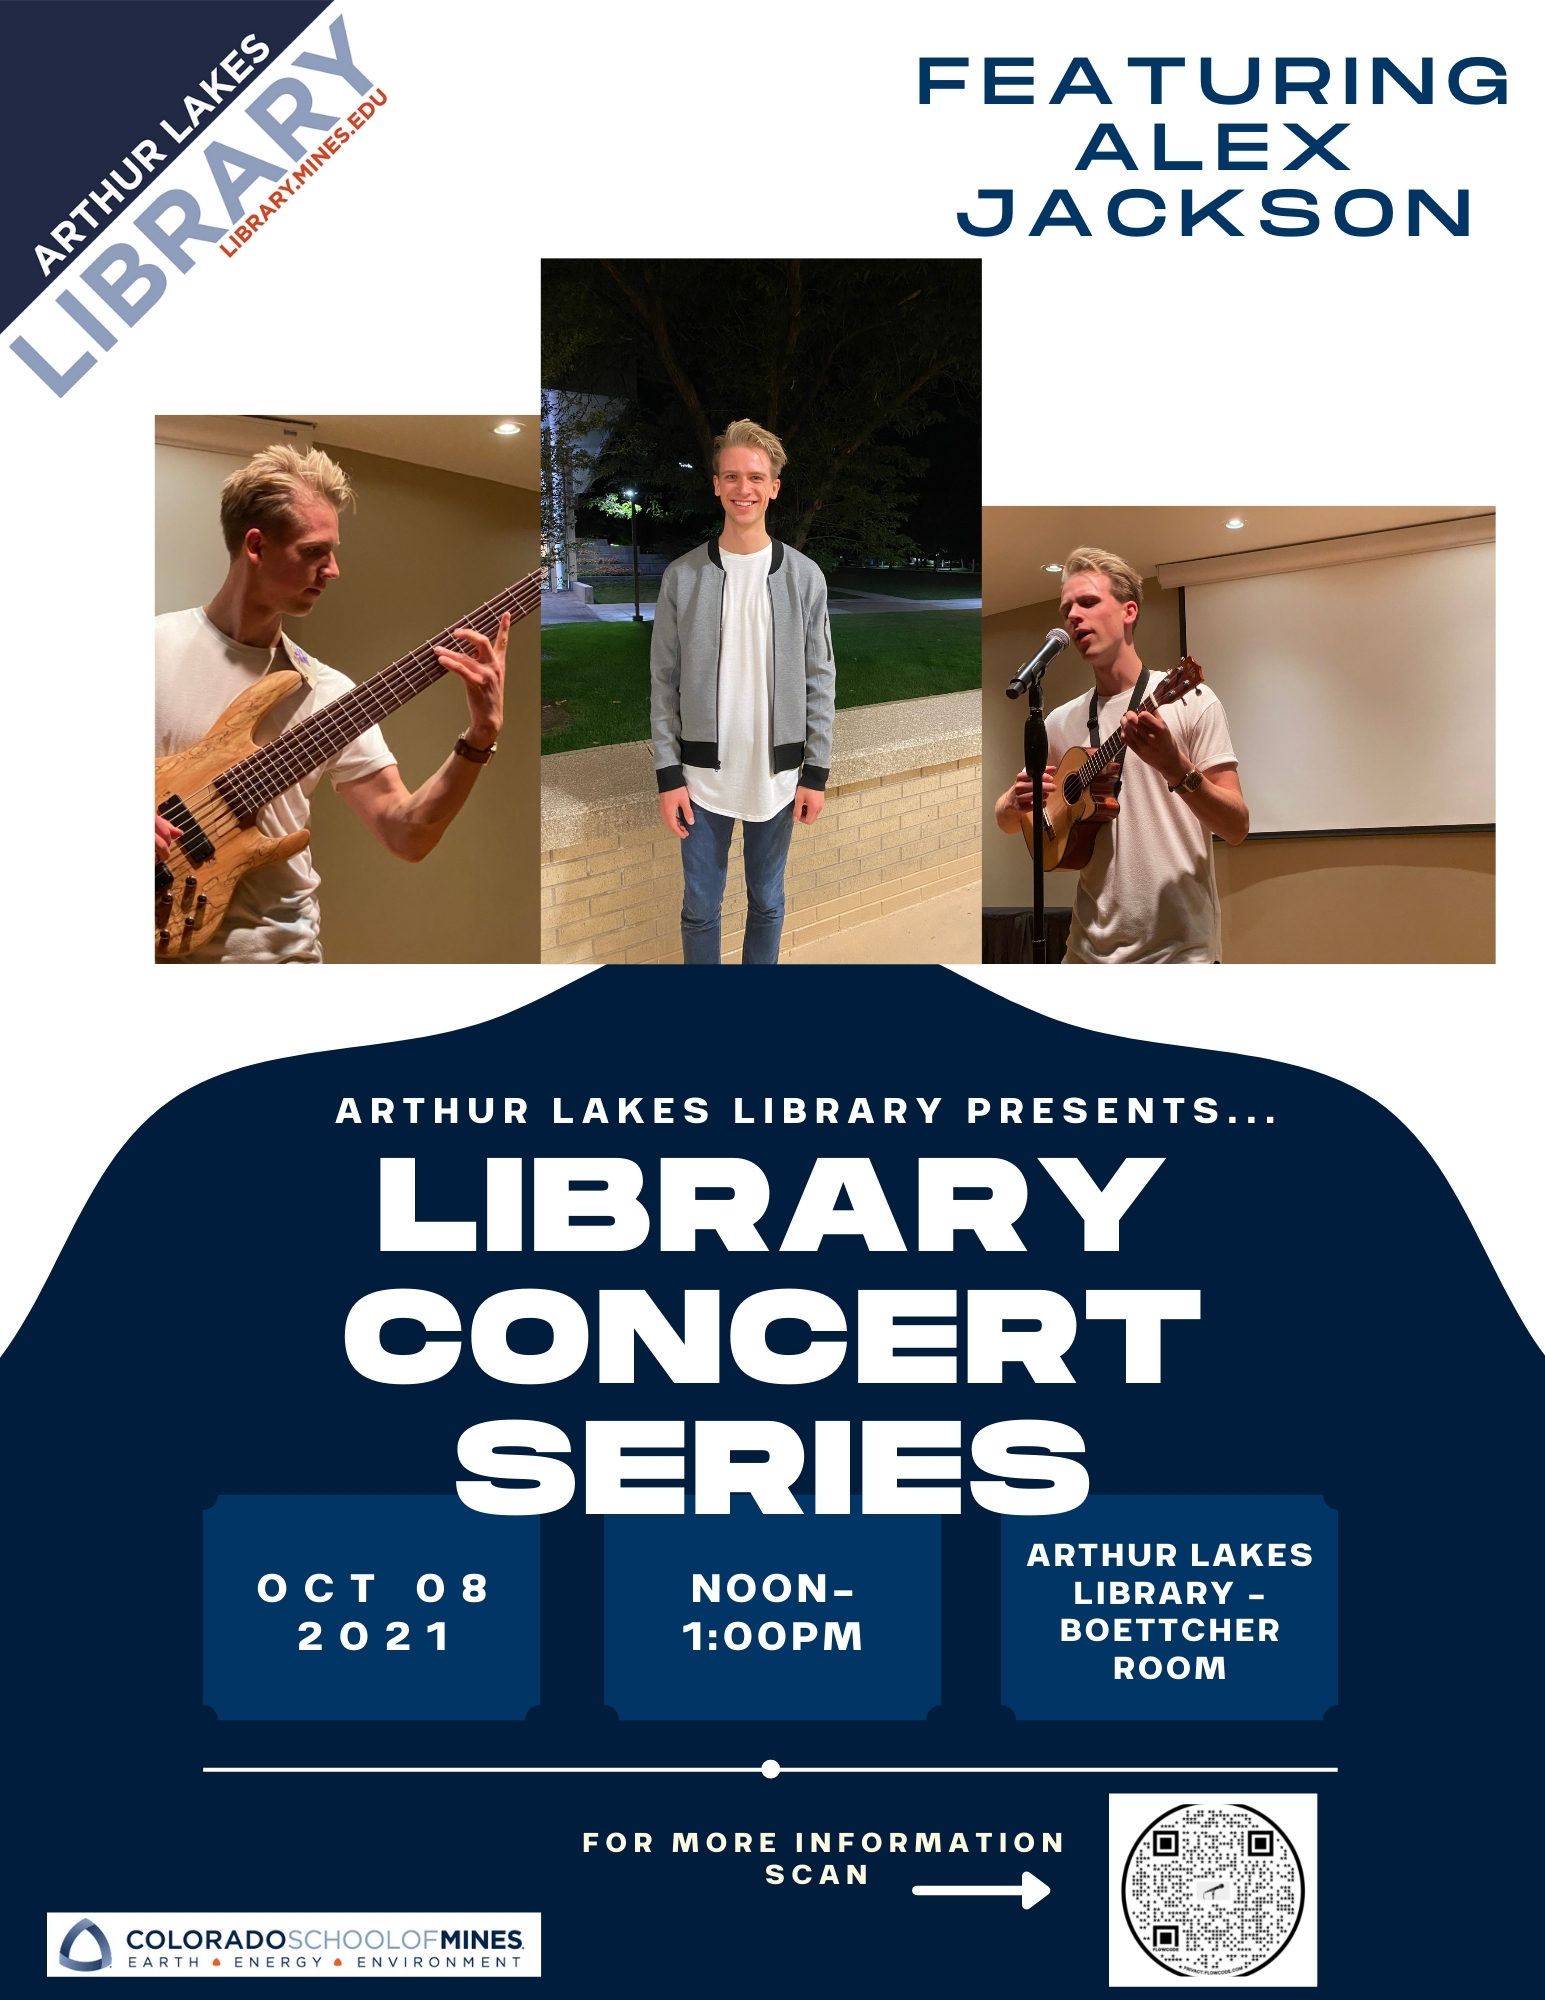 Library Concert Series featuring Alex Jackson